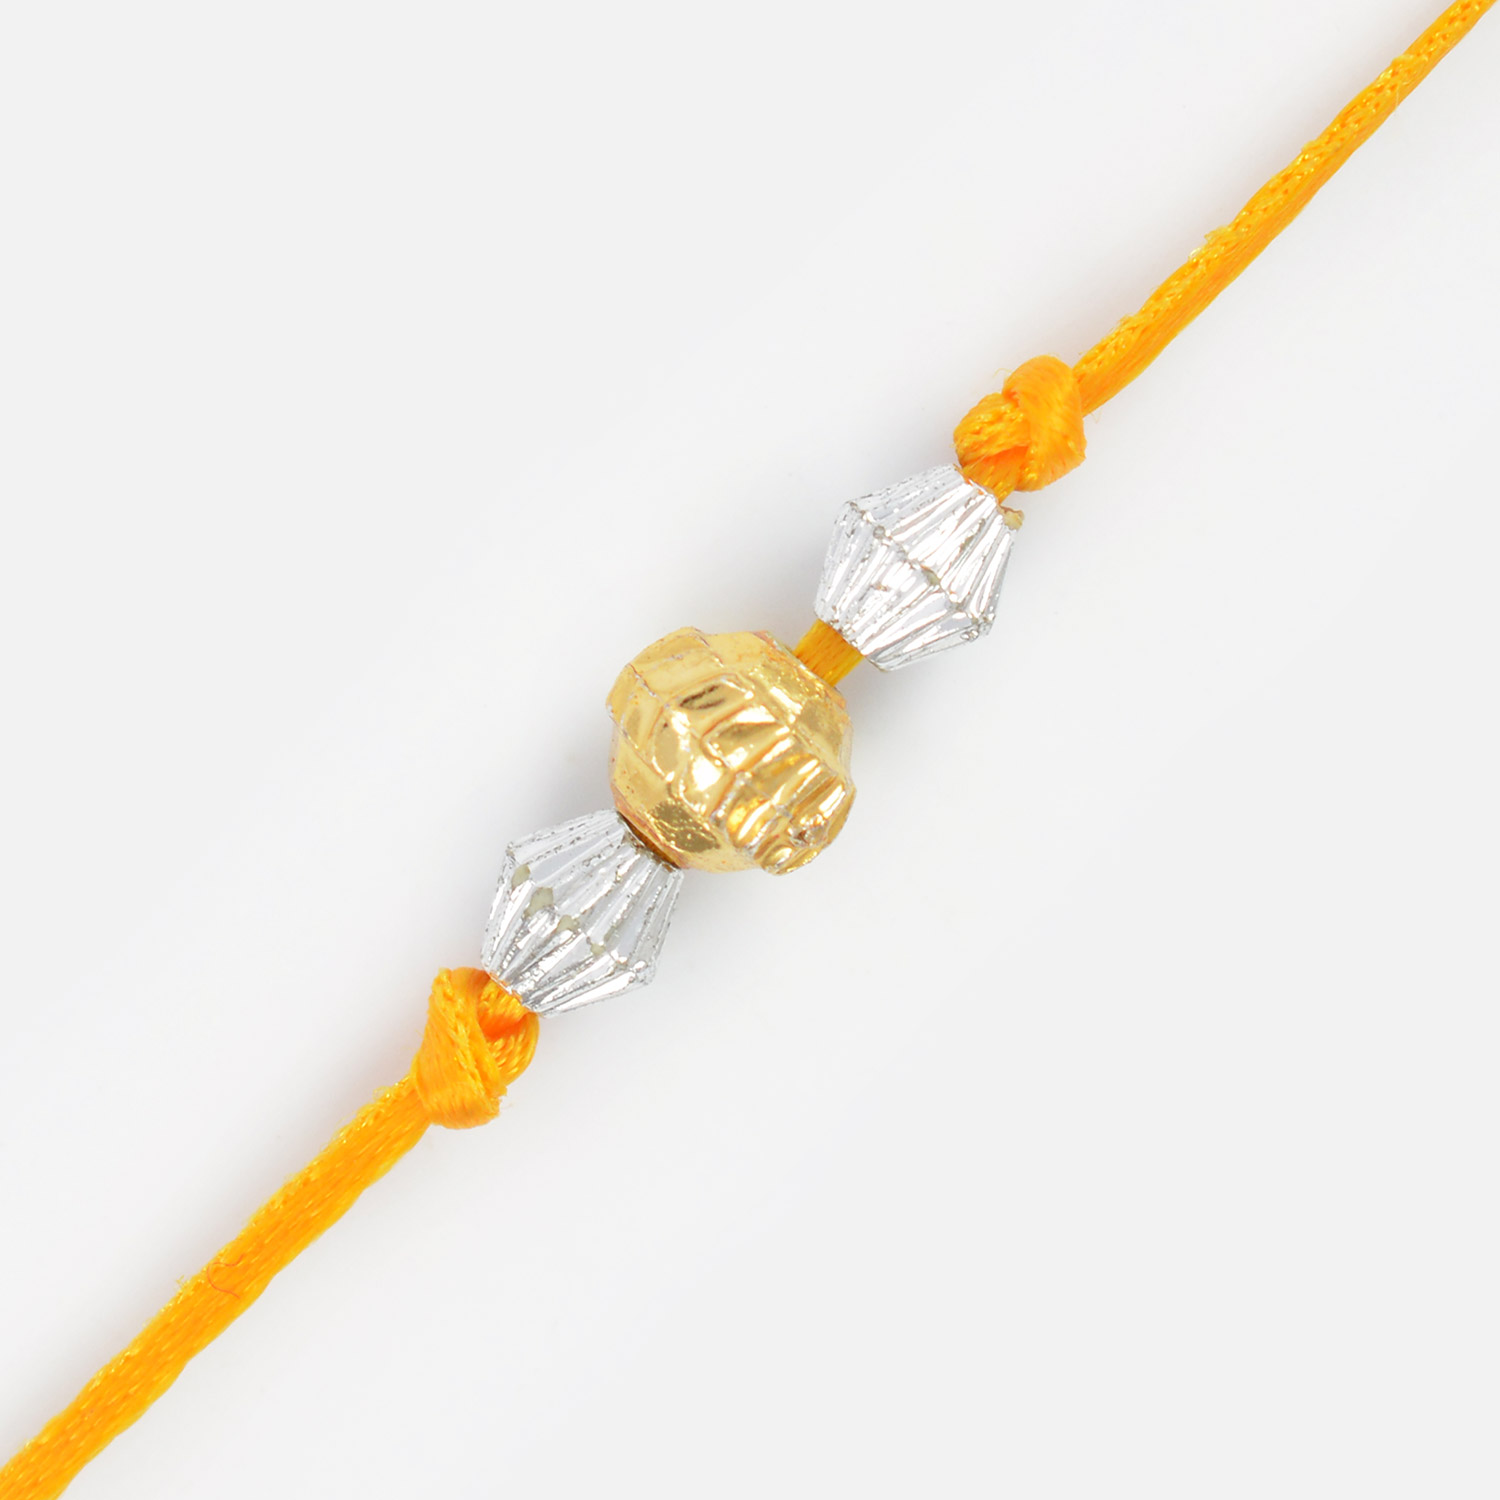 Central Golden with Two Silver Beads Thread Rakhi for Brother